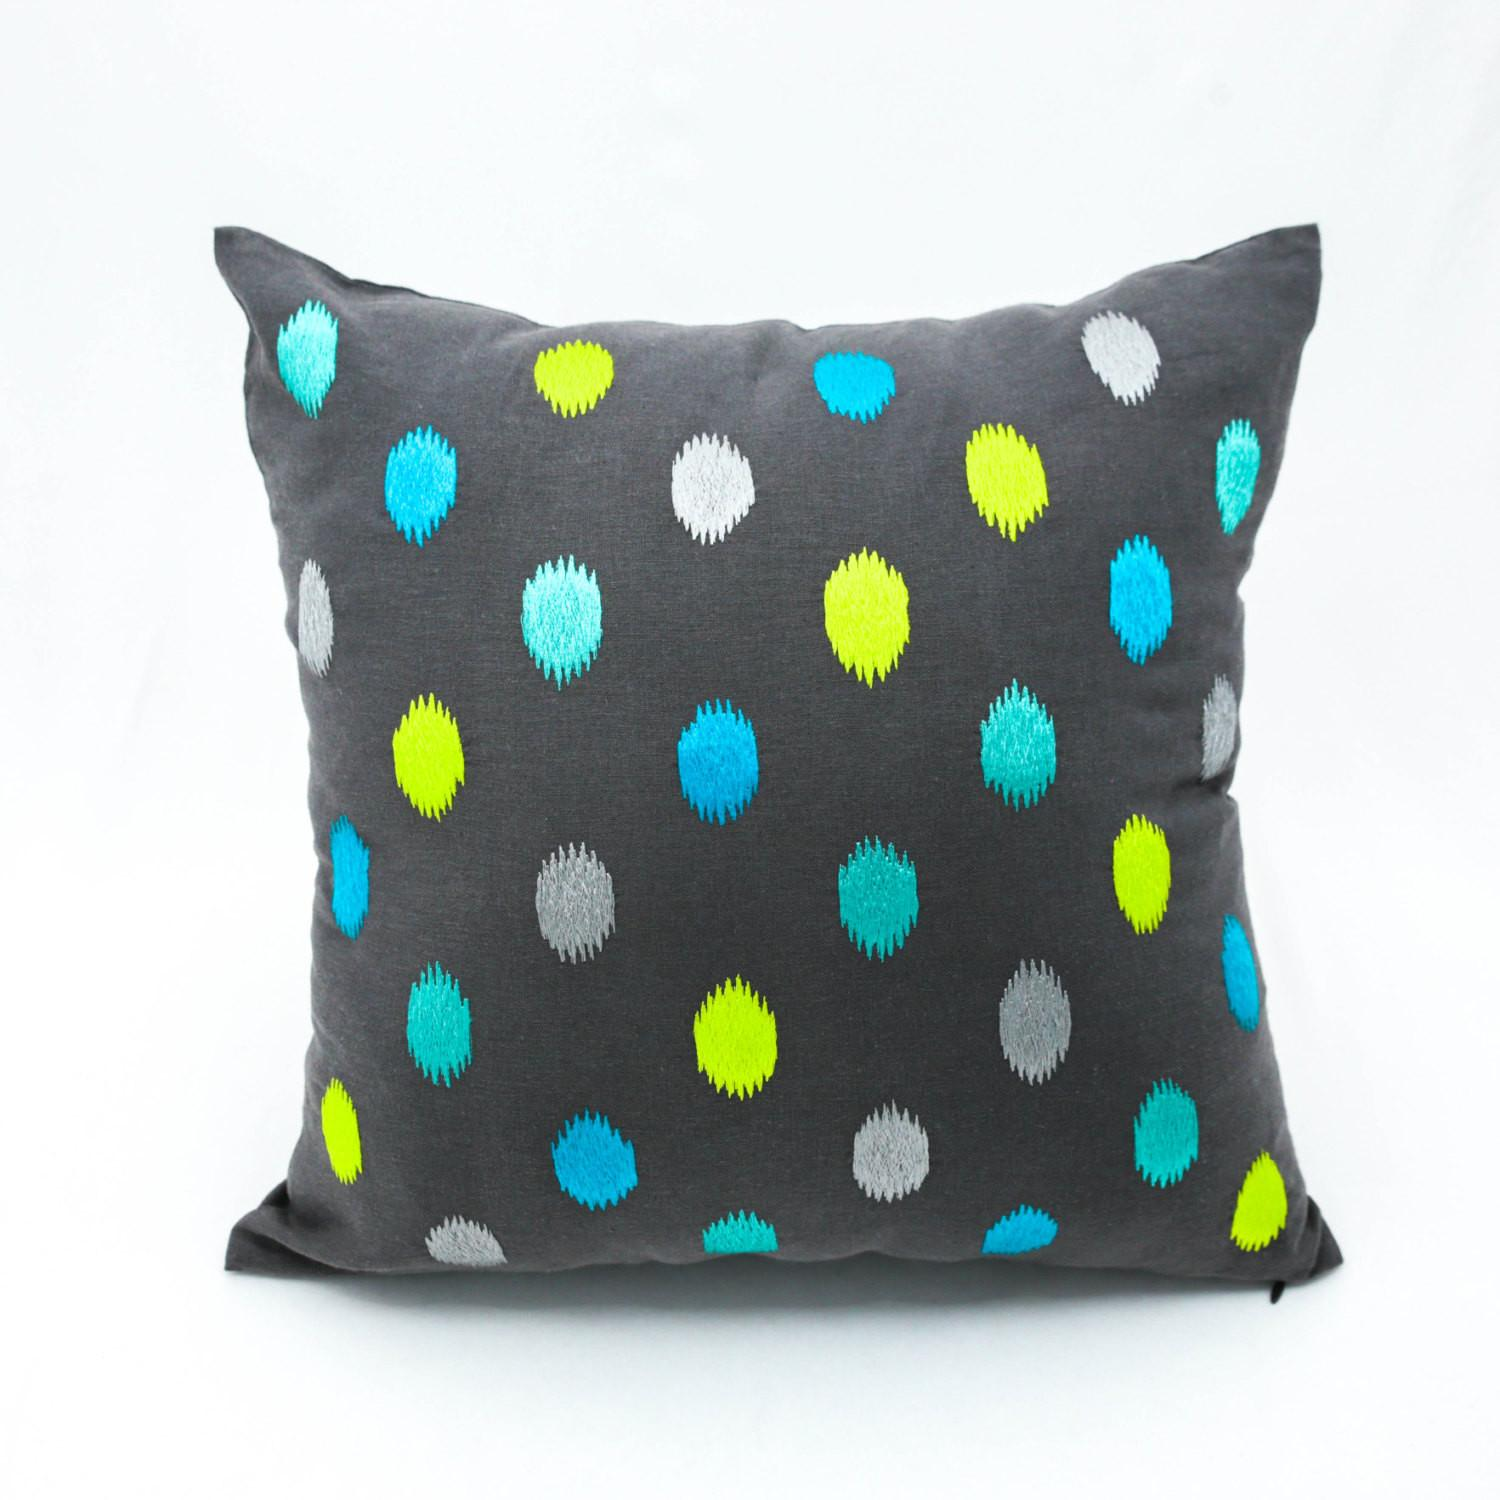 Ikat Dots Pillow Cover Modern Throw Dark Grey